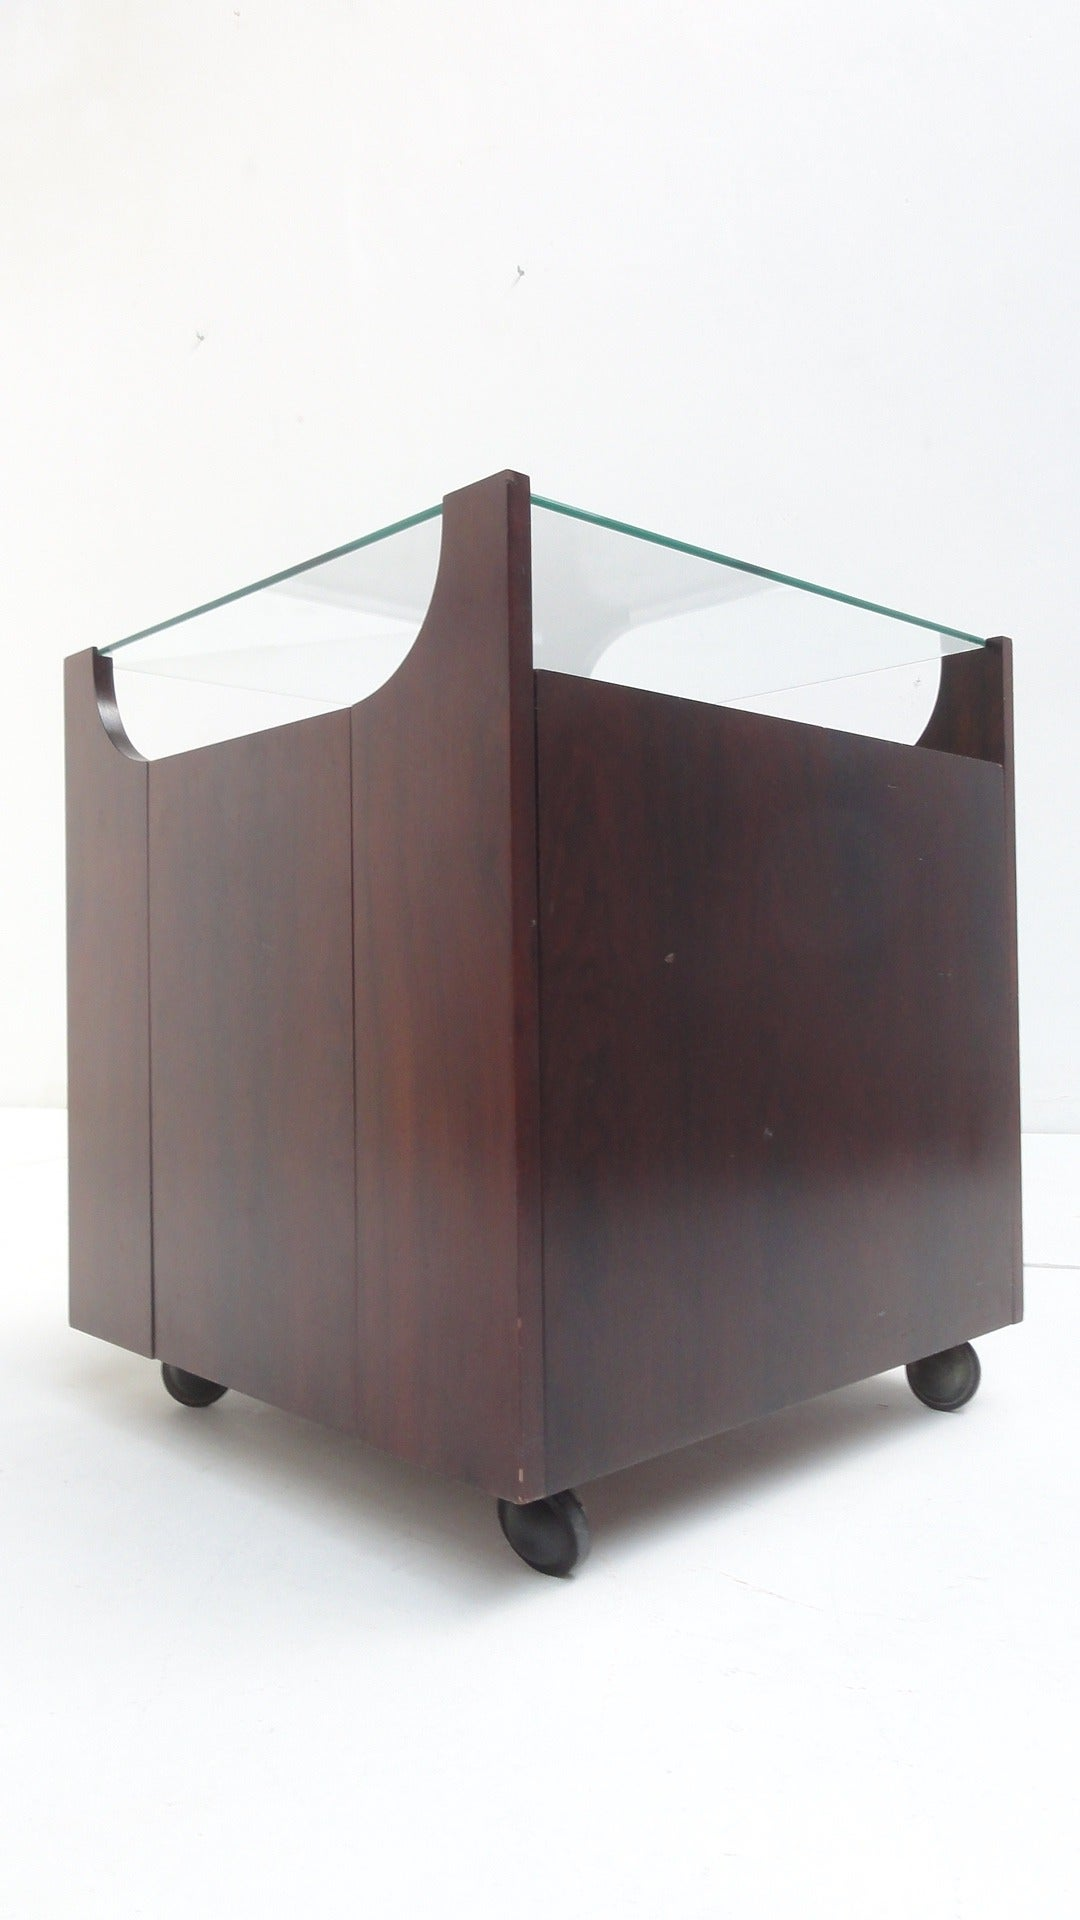 Stunning Bar by Bruno Munari, Rare Early Mahogany Edition 1962, Stildomus, Italy In Good Condition For Sale In bergen op zoom, NL